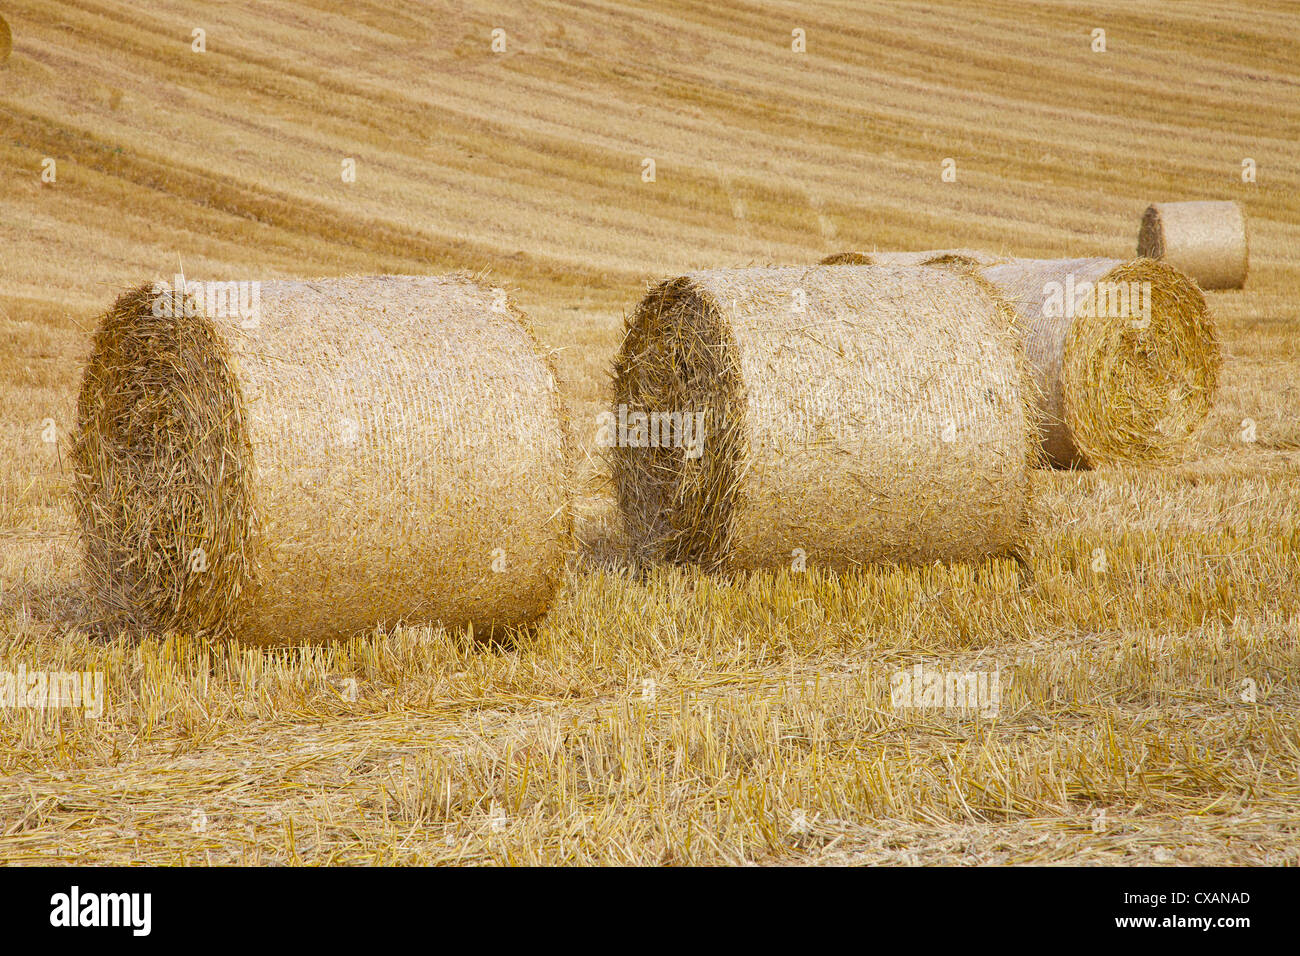 Straw bails in cut field Aiketgate, Eden Valley, Cumbria, England, UK - Stock Image